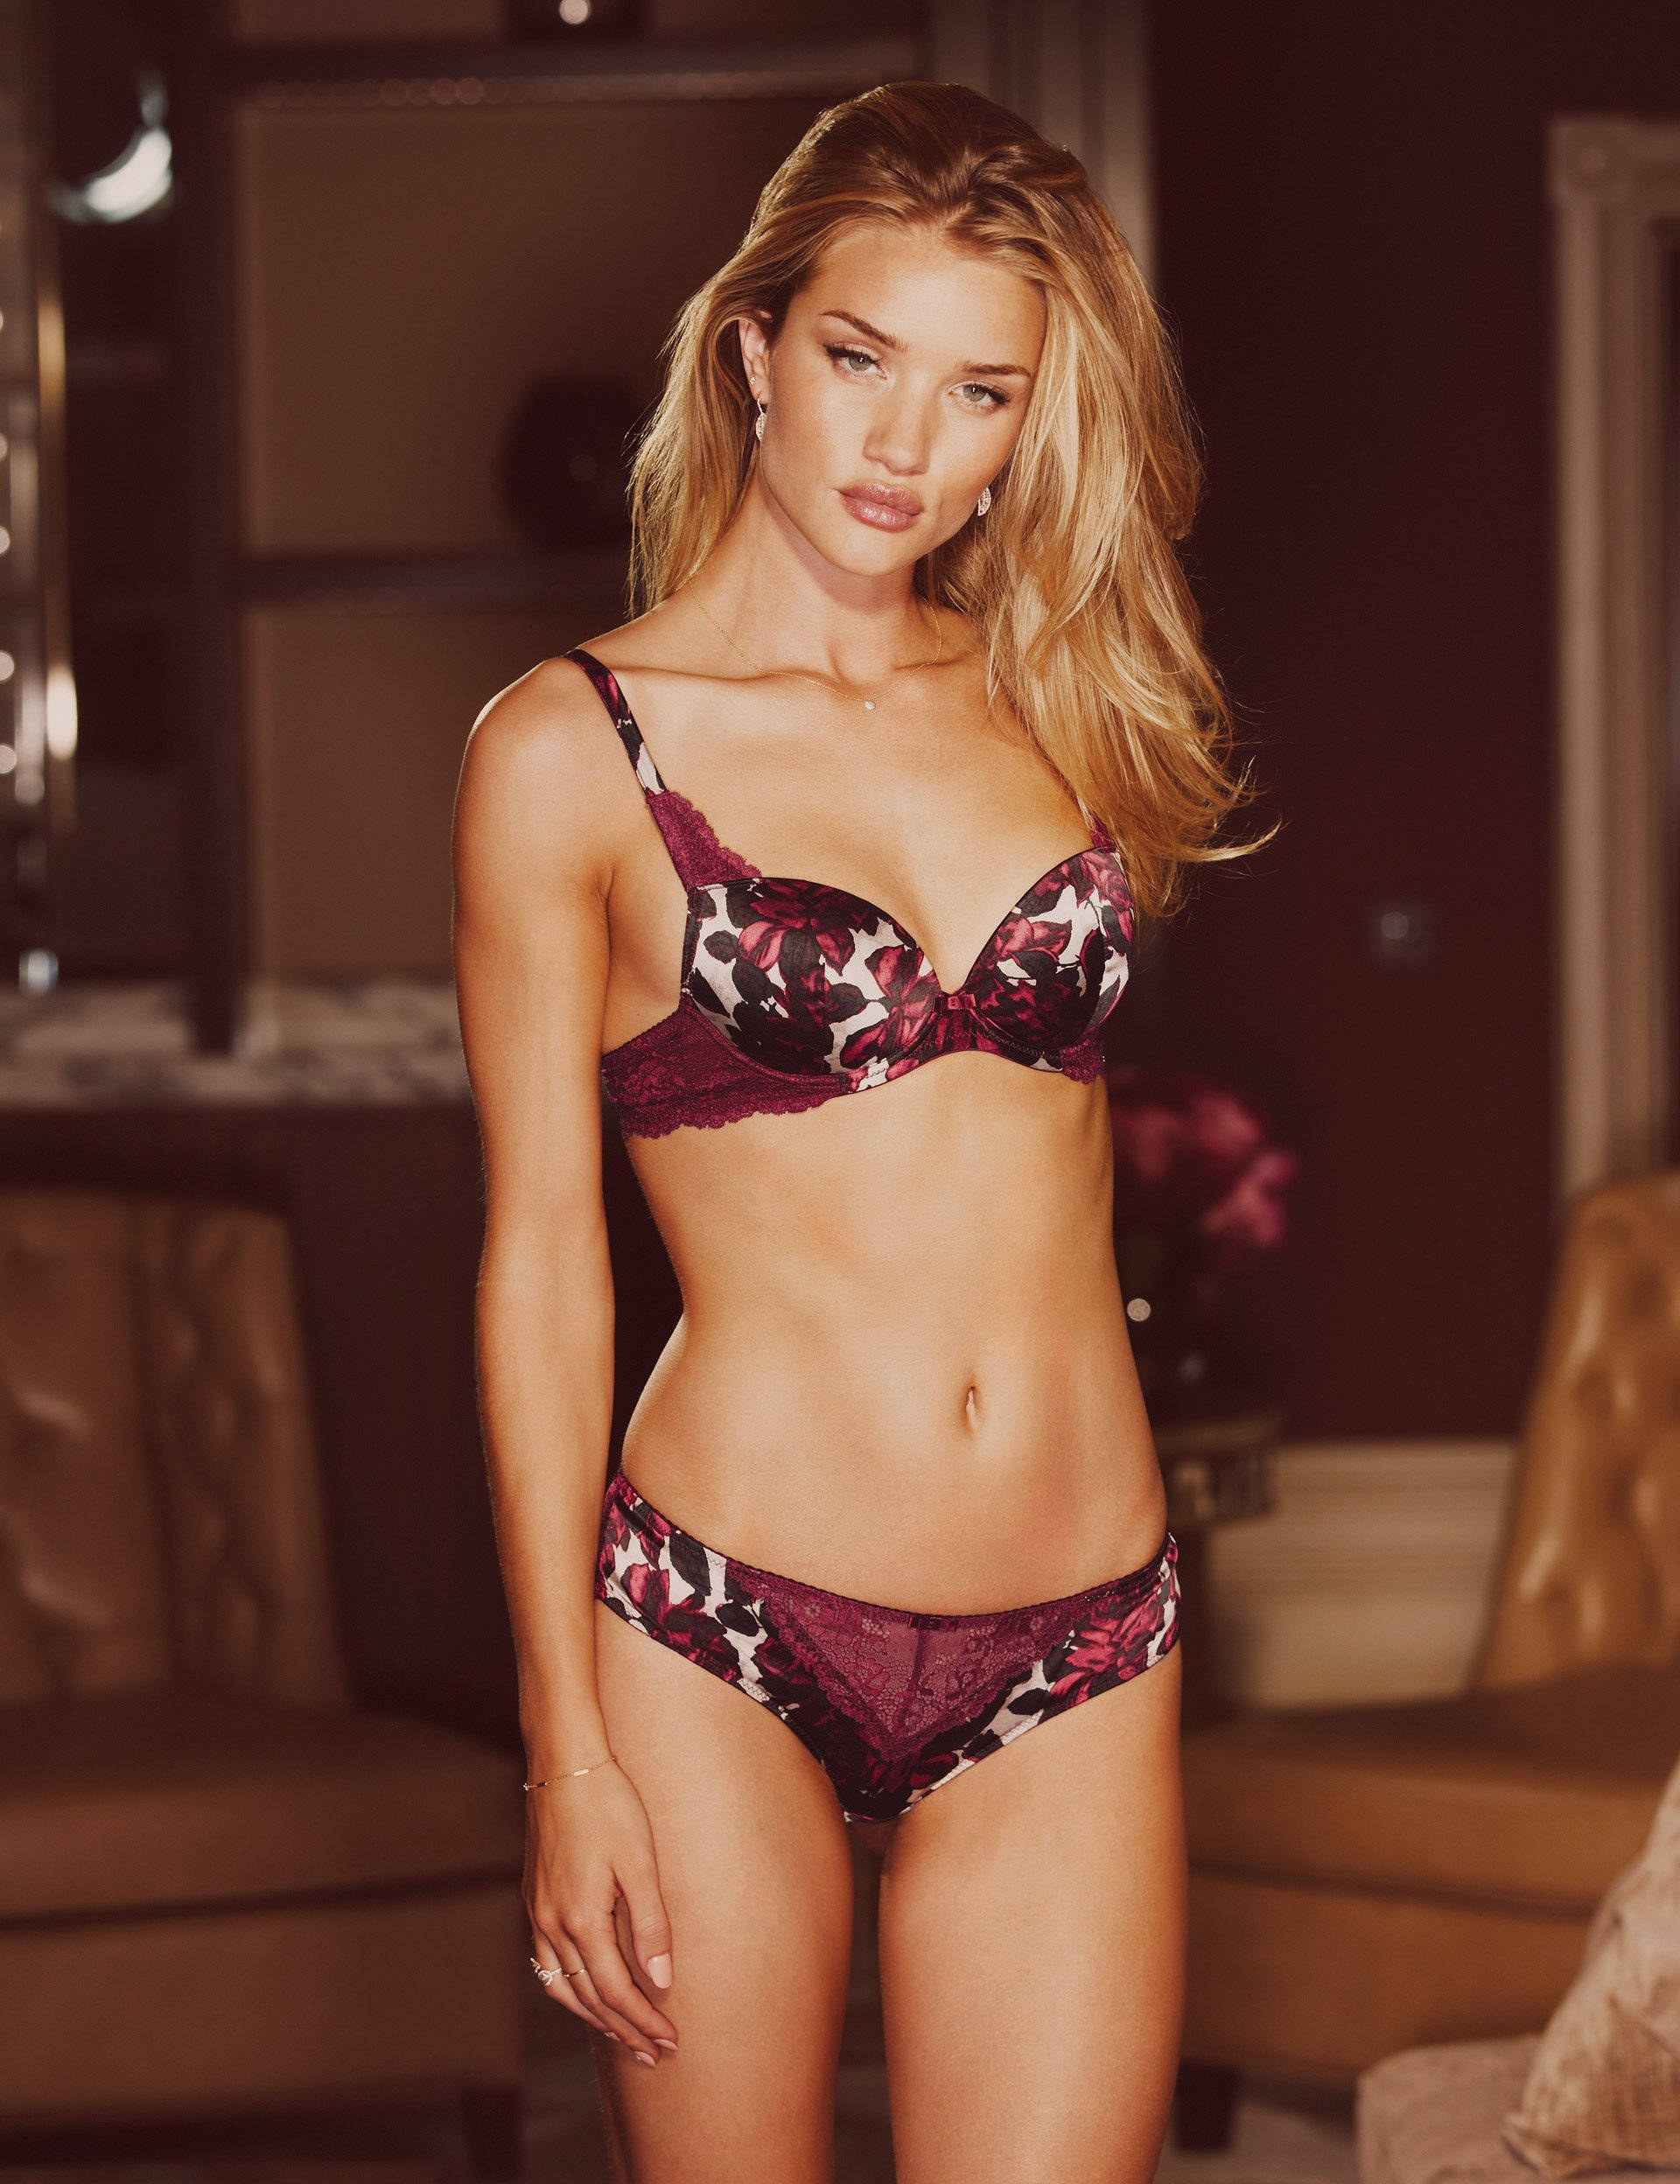 Rosie-Huntington-Whiteley-Autograph-lingerie-1